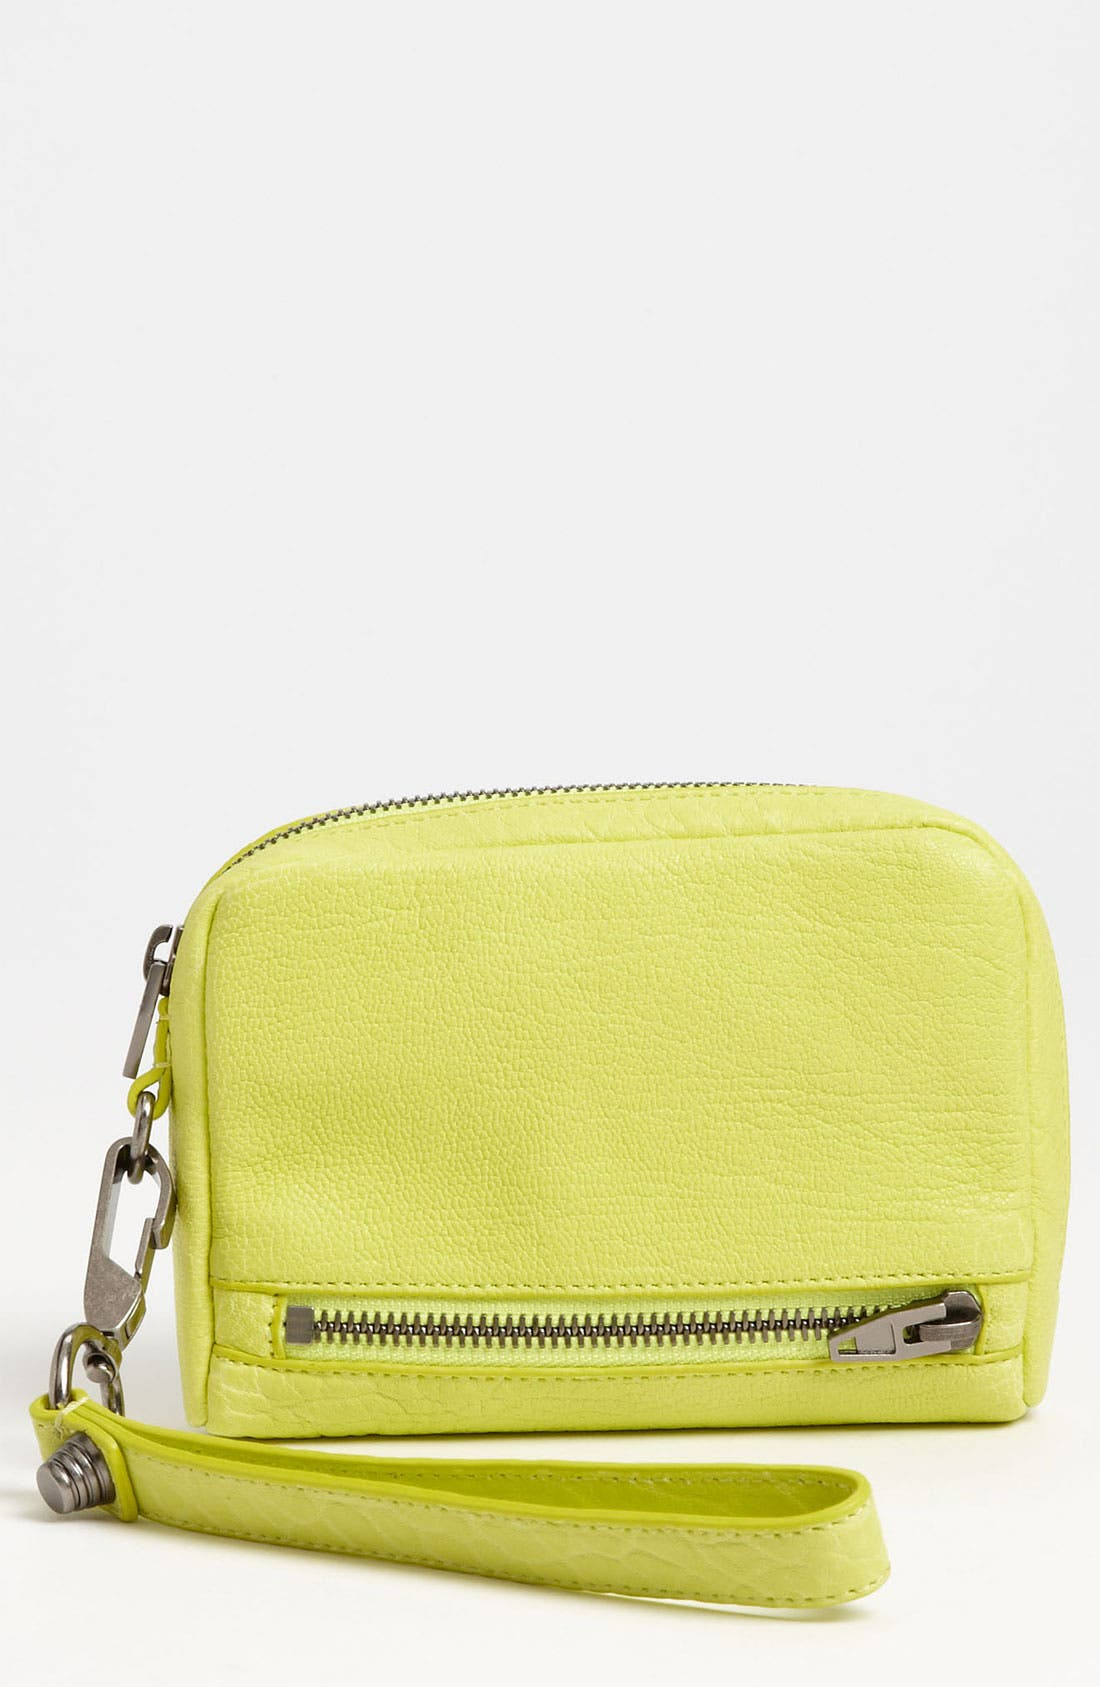 Alternate Image 1 Selected - Alexander Wang 'Fumo' Leather Wristlet